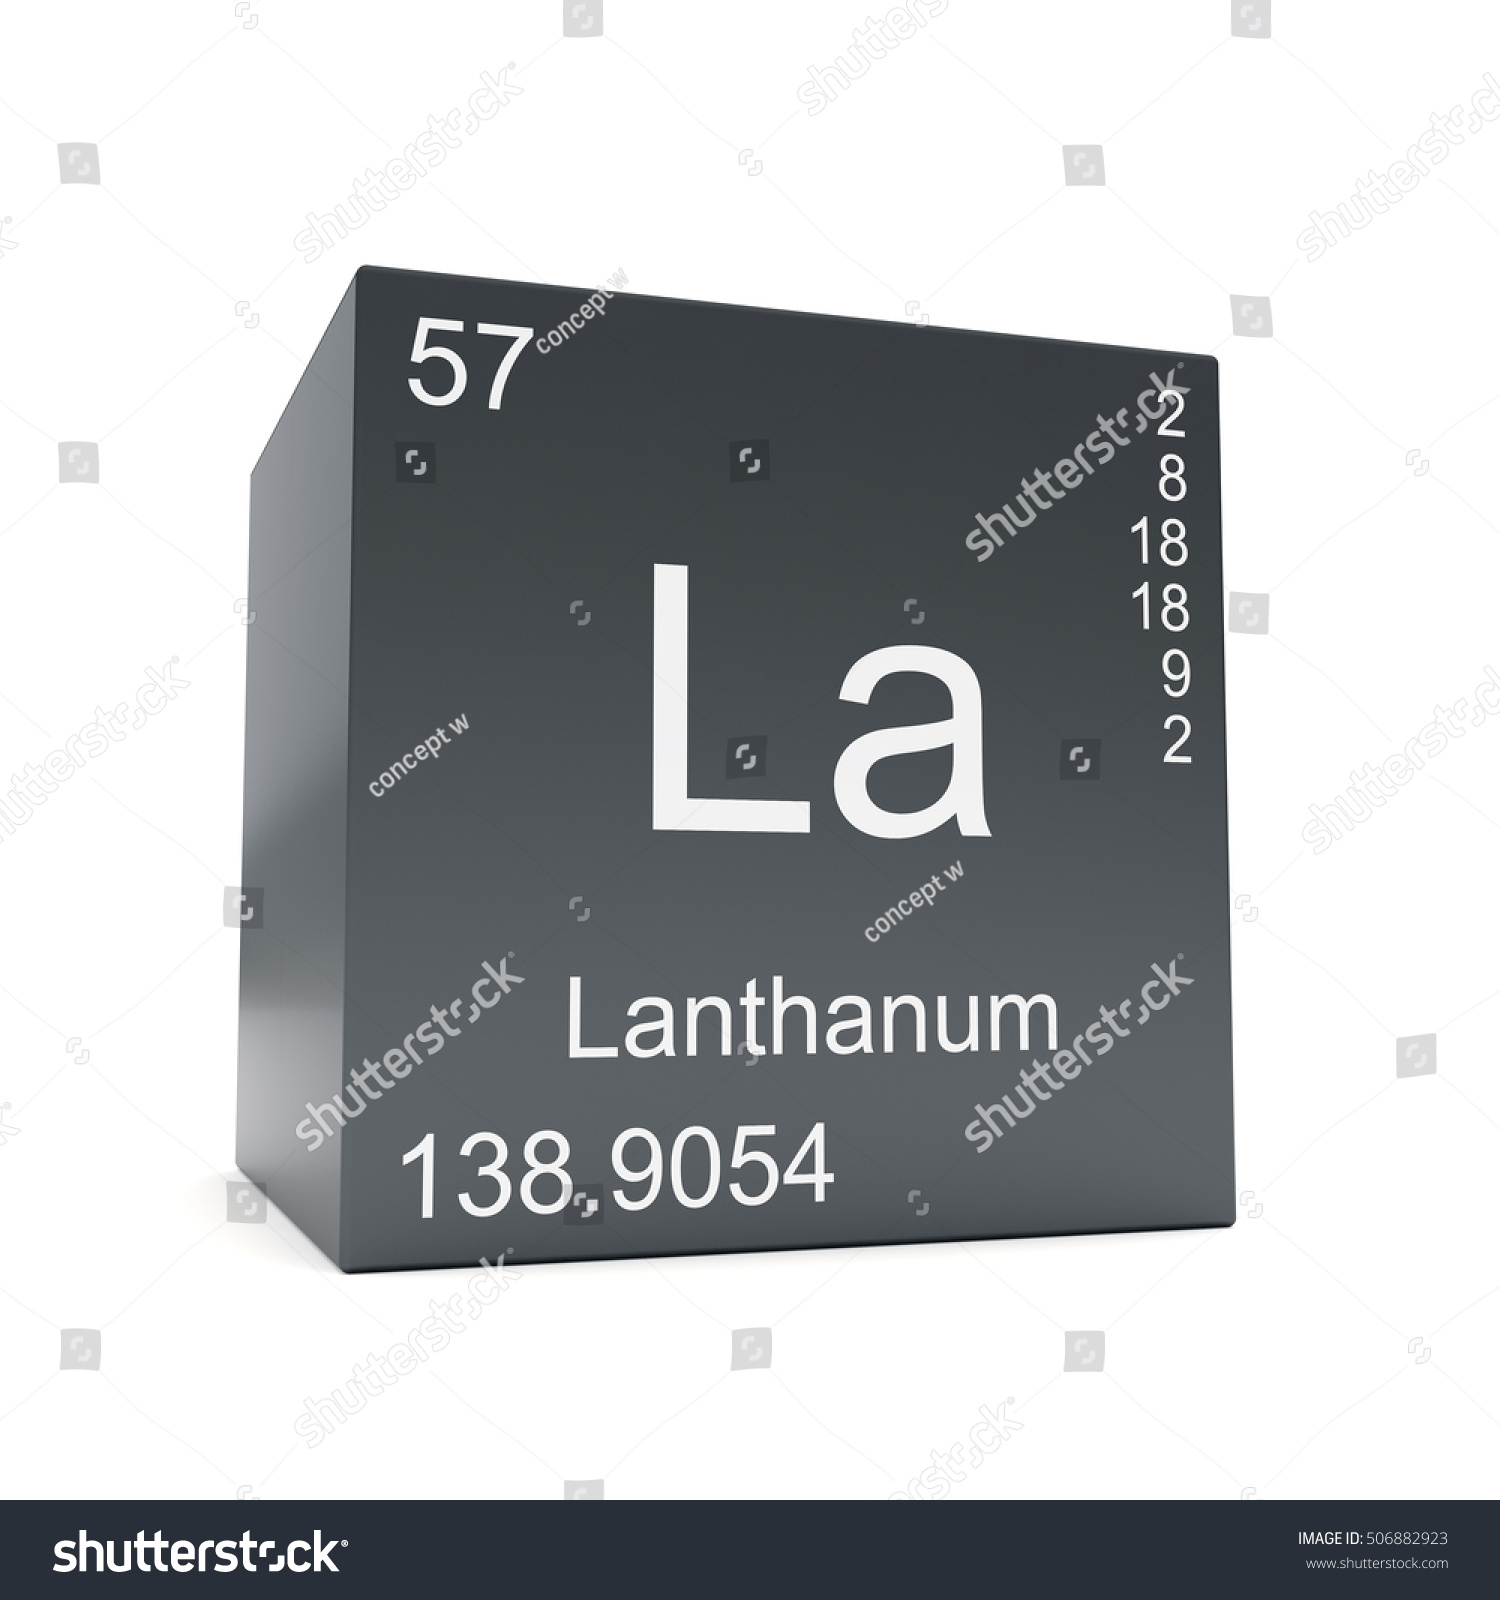 Lanthanum chemical element symbol periodic table stock lanthanum chemical element symbol from the periodic table displayed on black cube 3d render gamestrikefo Image collections